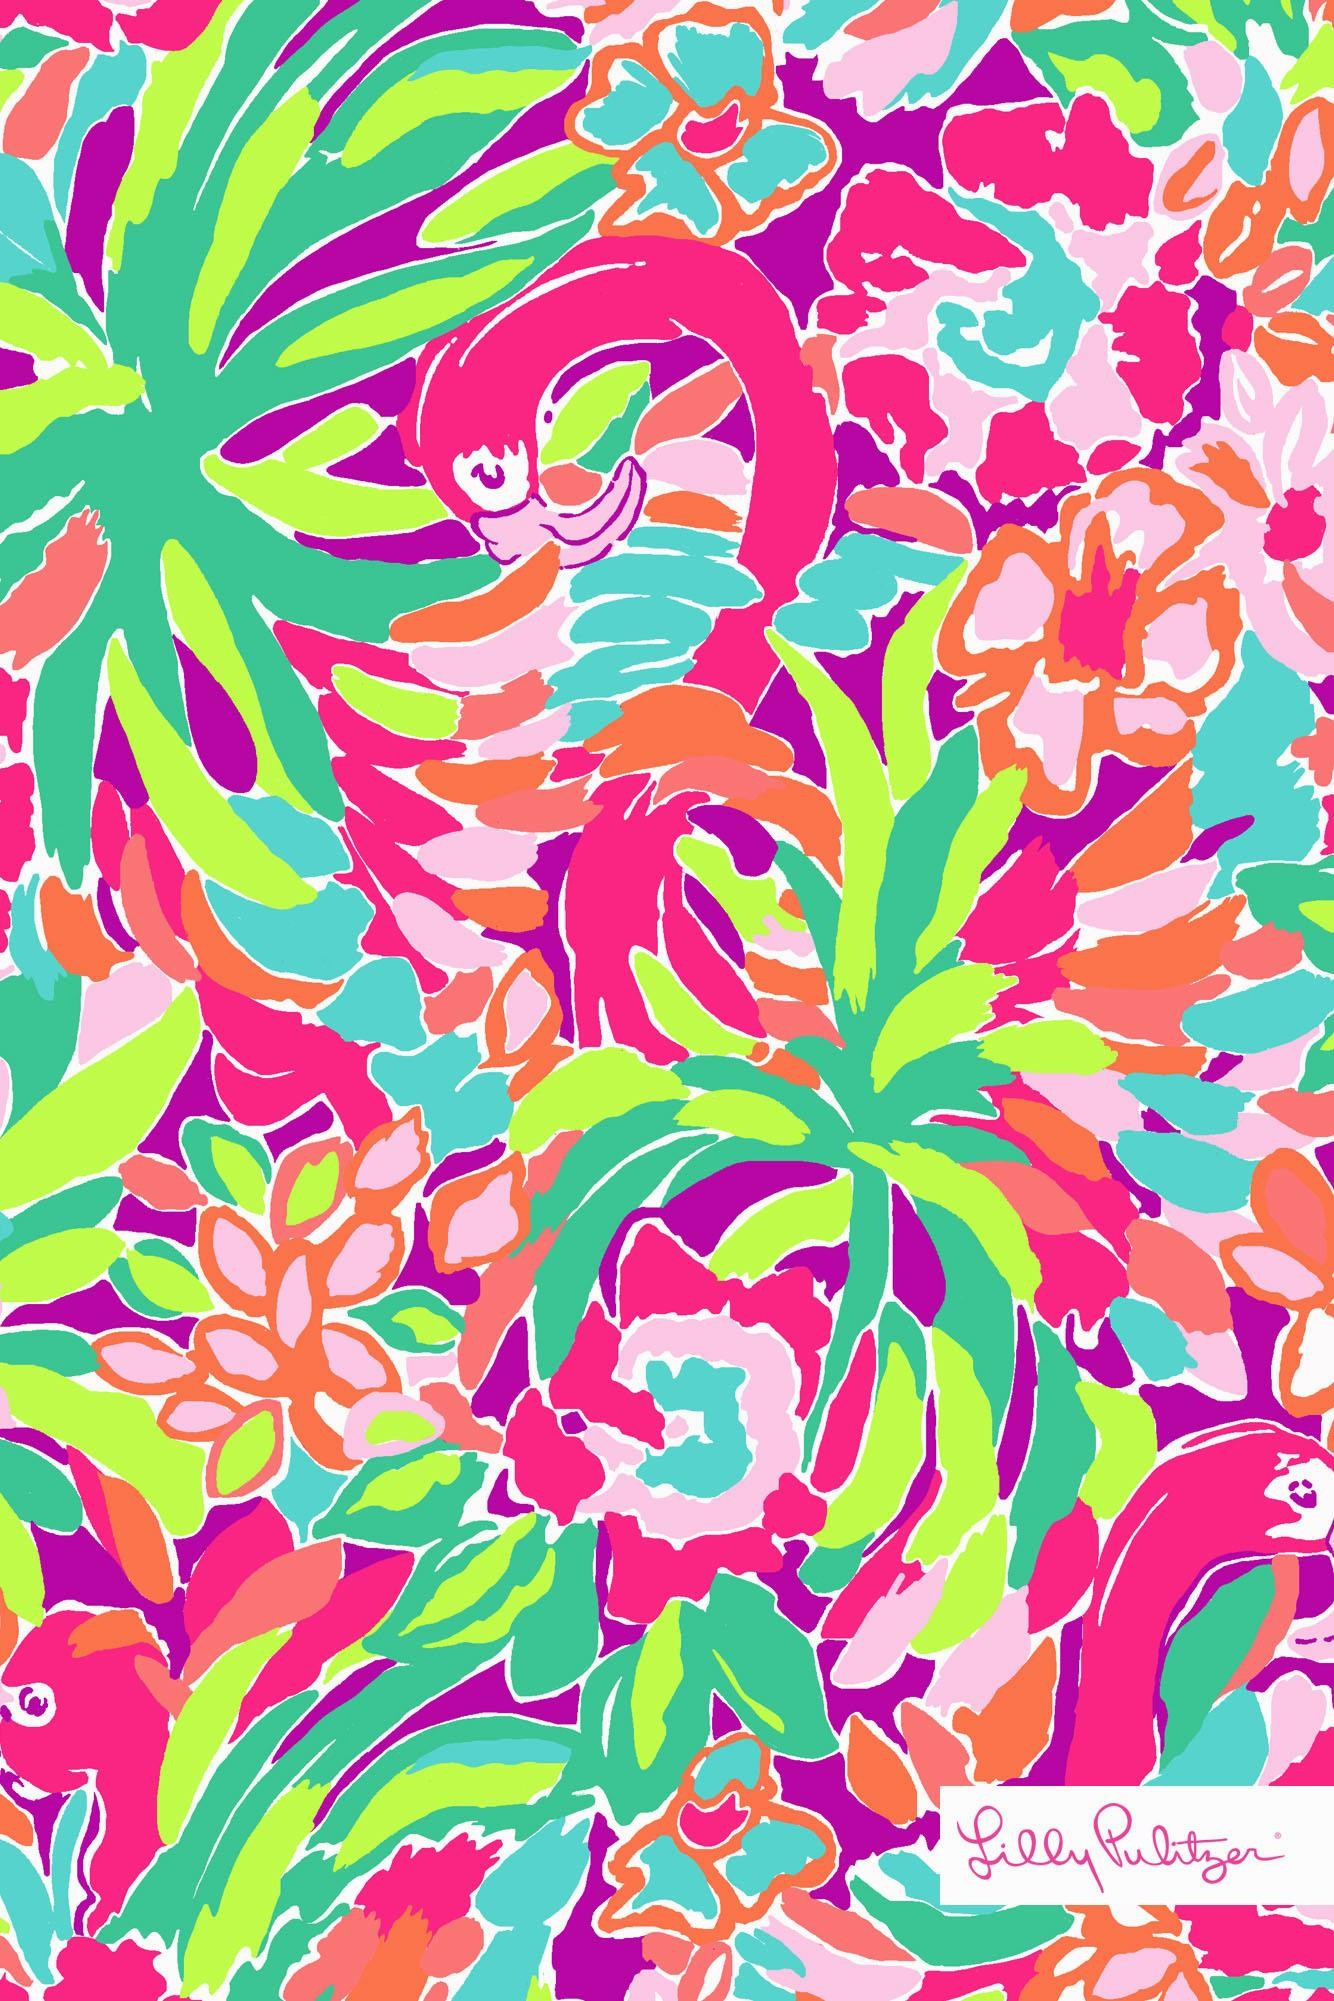 Lilly-Pulitzer-Lulu-wallpaper-for-iPhone-wallpaper-1